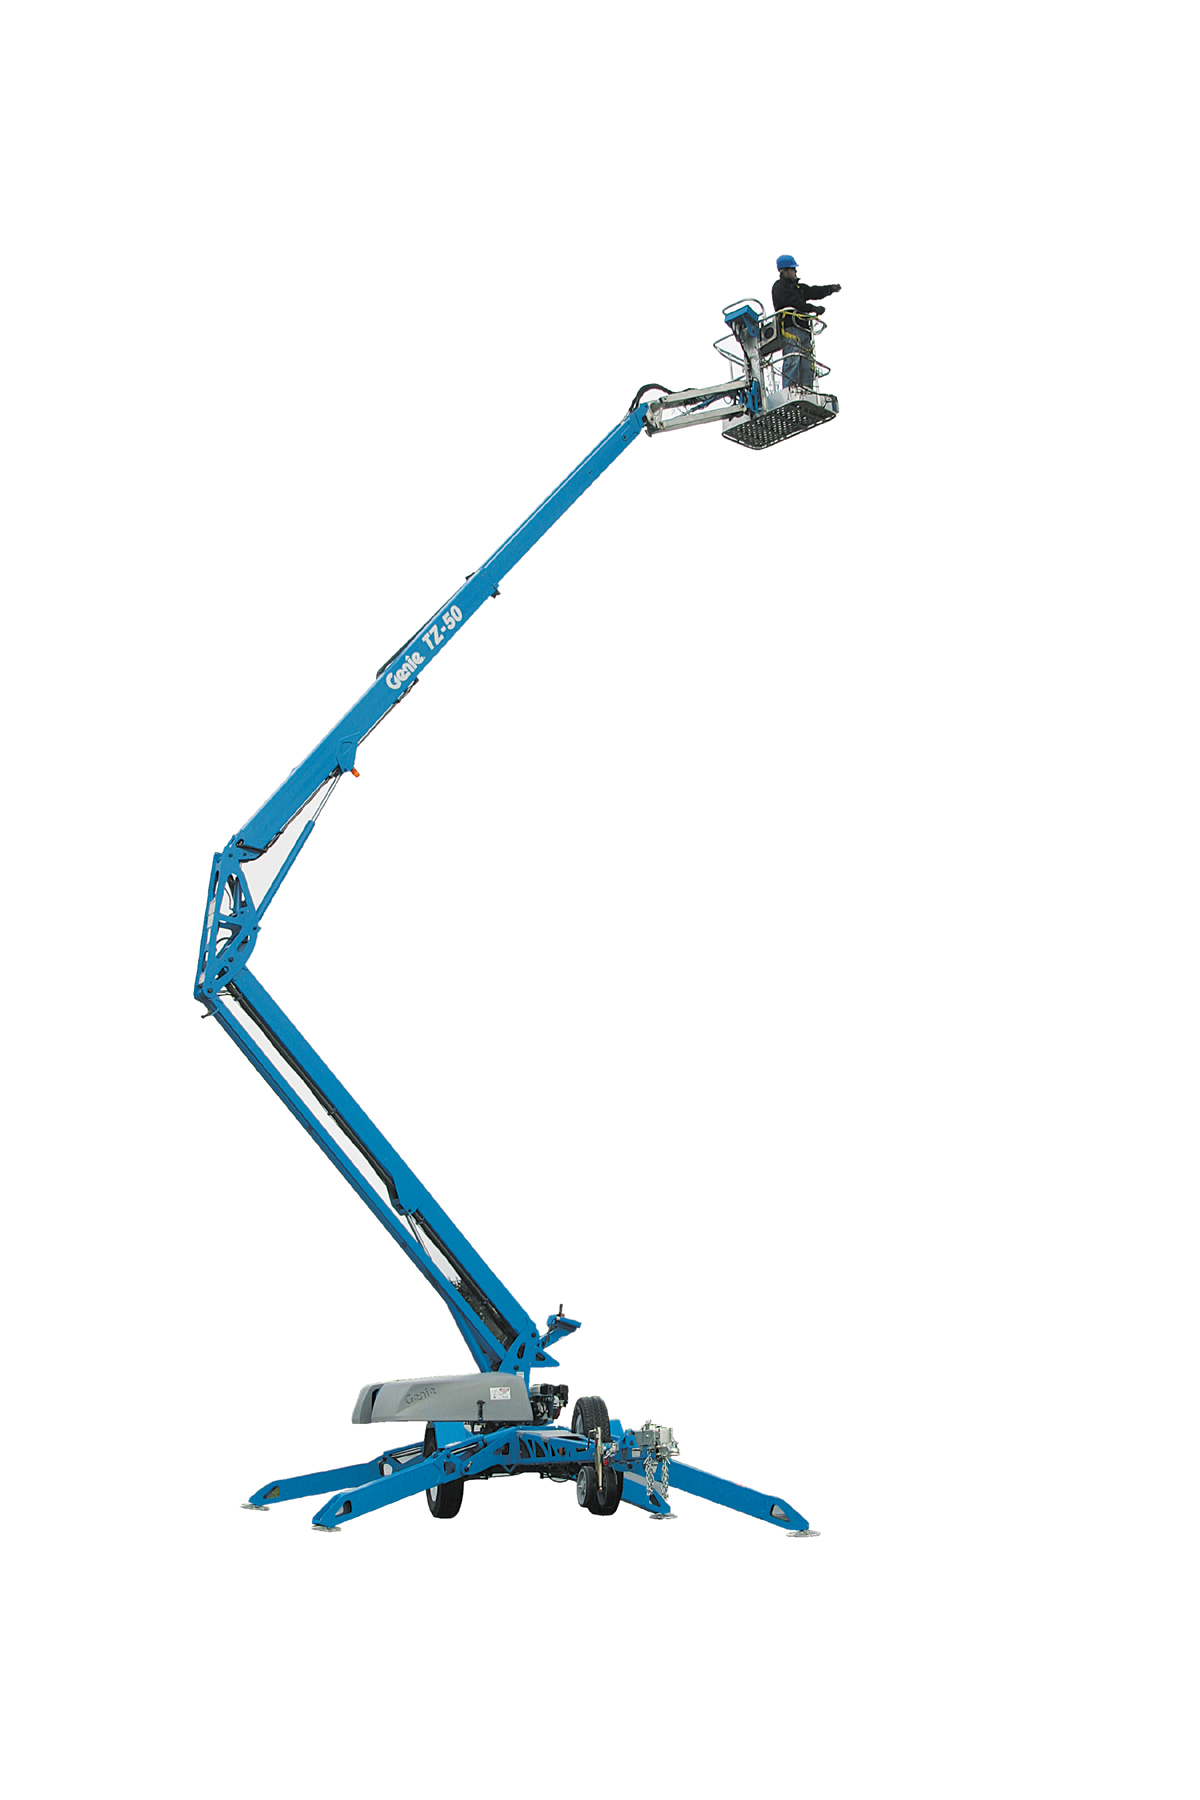 Used Equipment further Index together with Index moreover Index together with Z3422n. on terex corporation locations